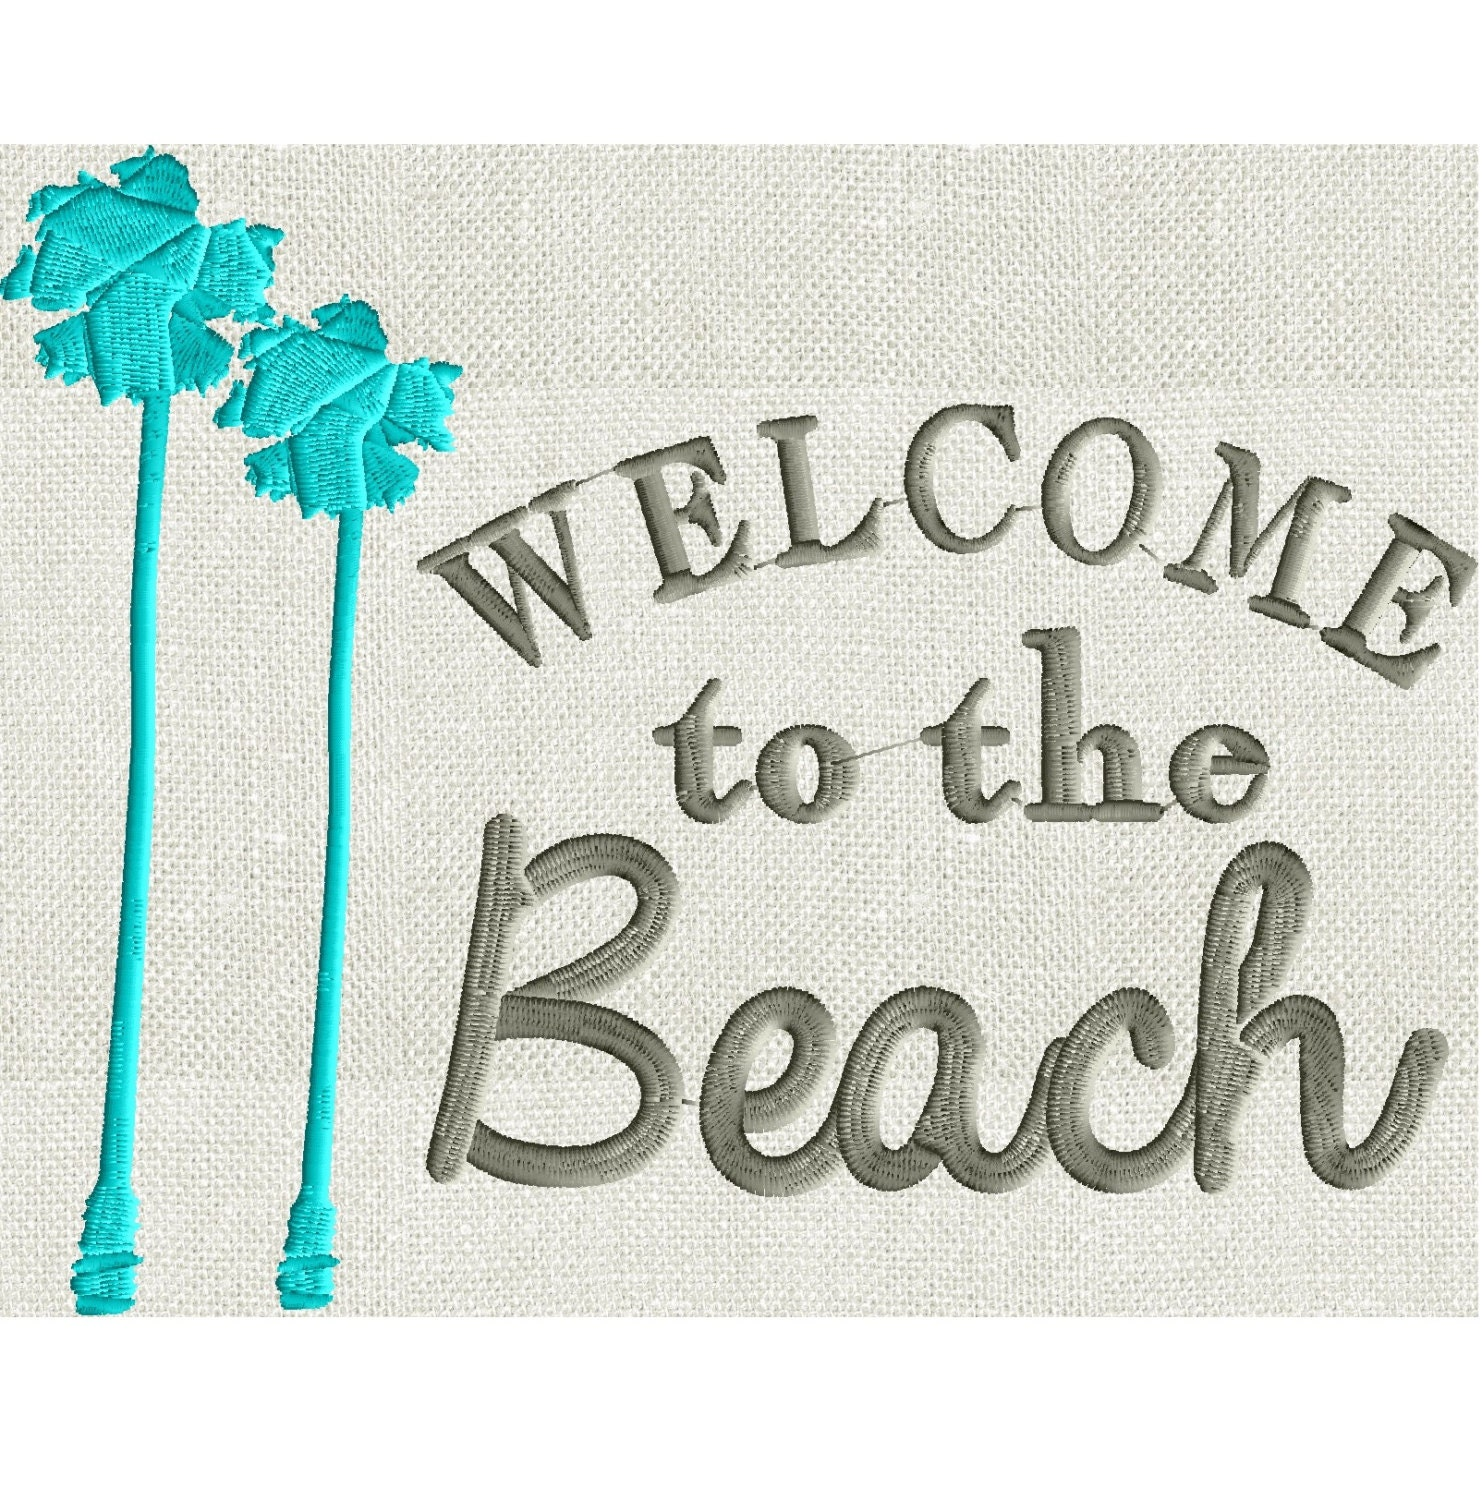 Home quote welcome to the beach embroidery design for Beach house embroidery design